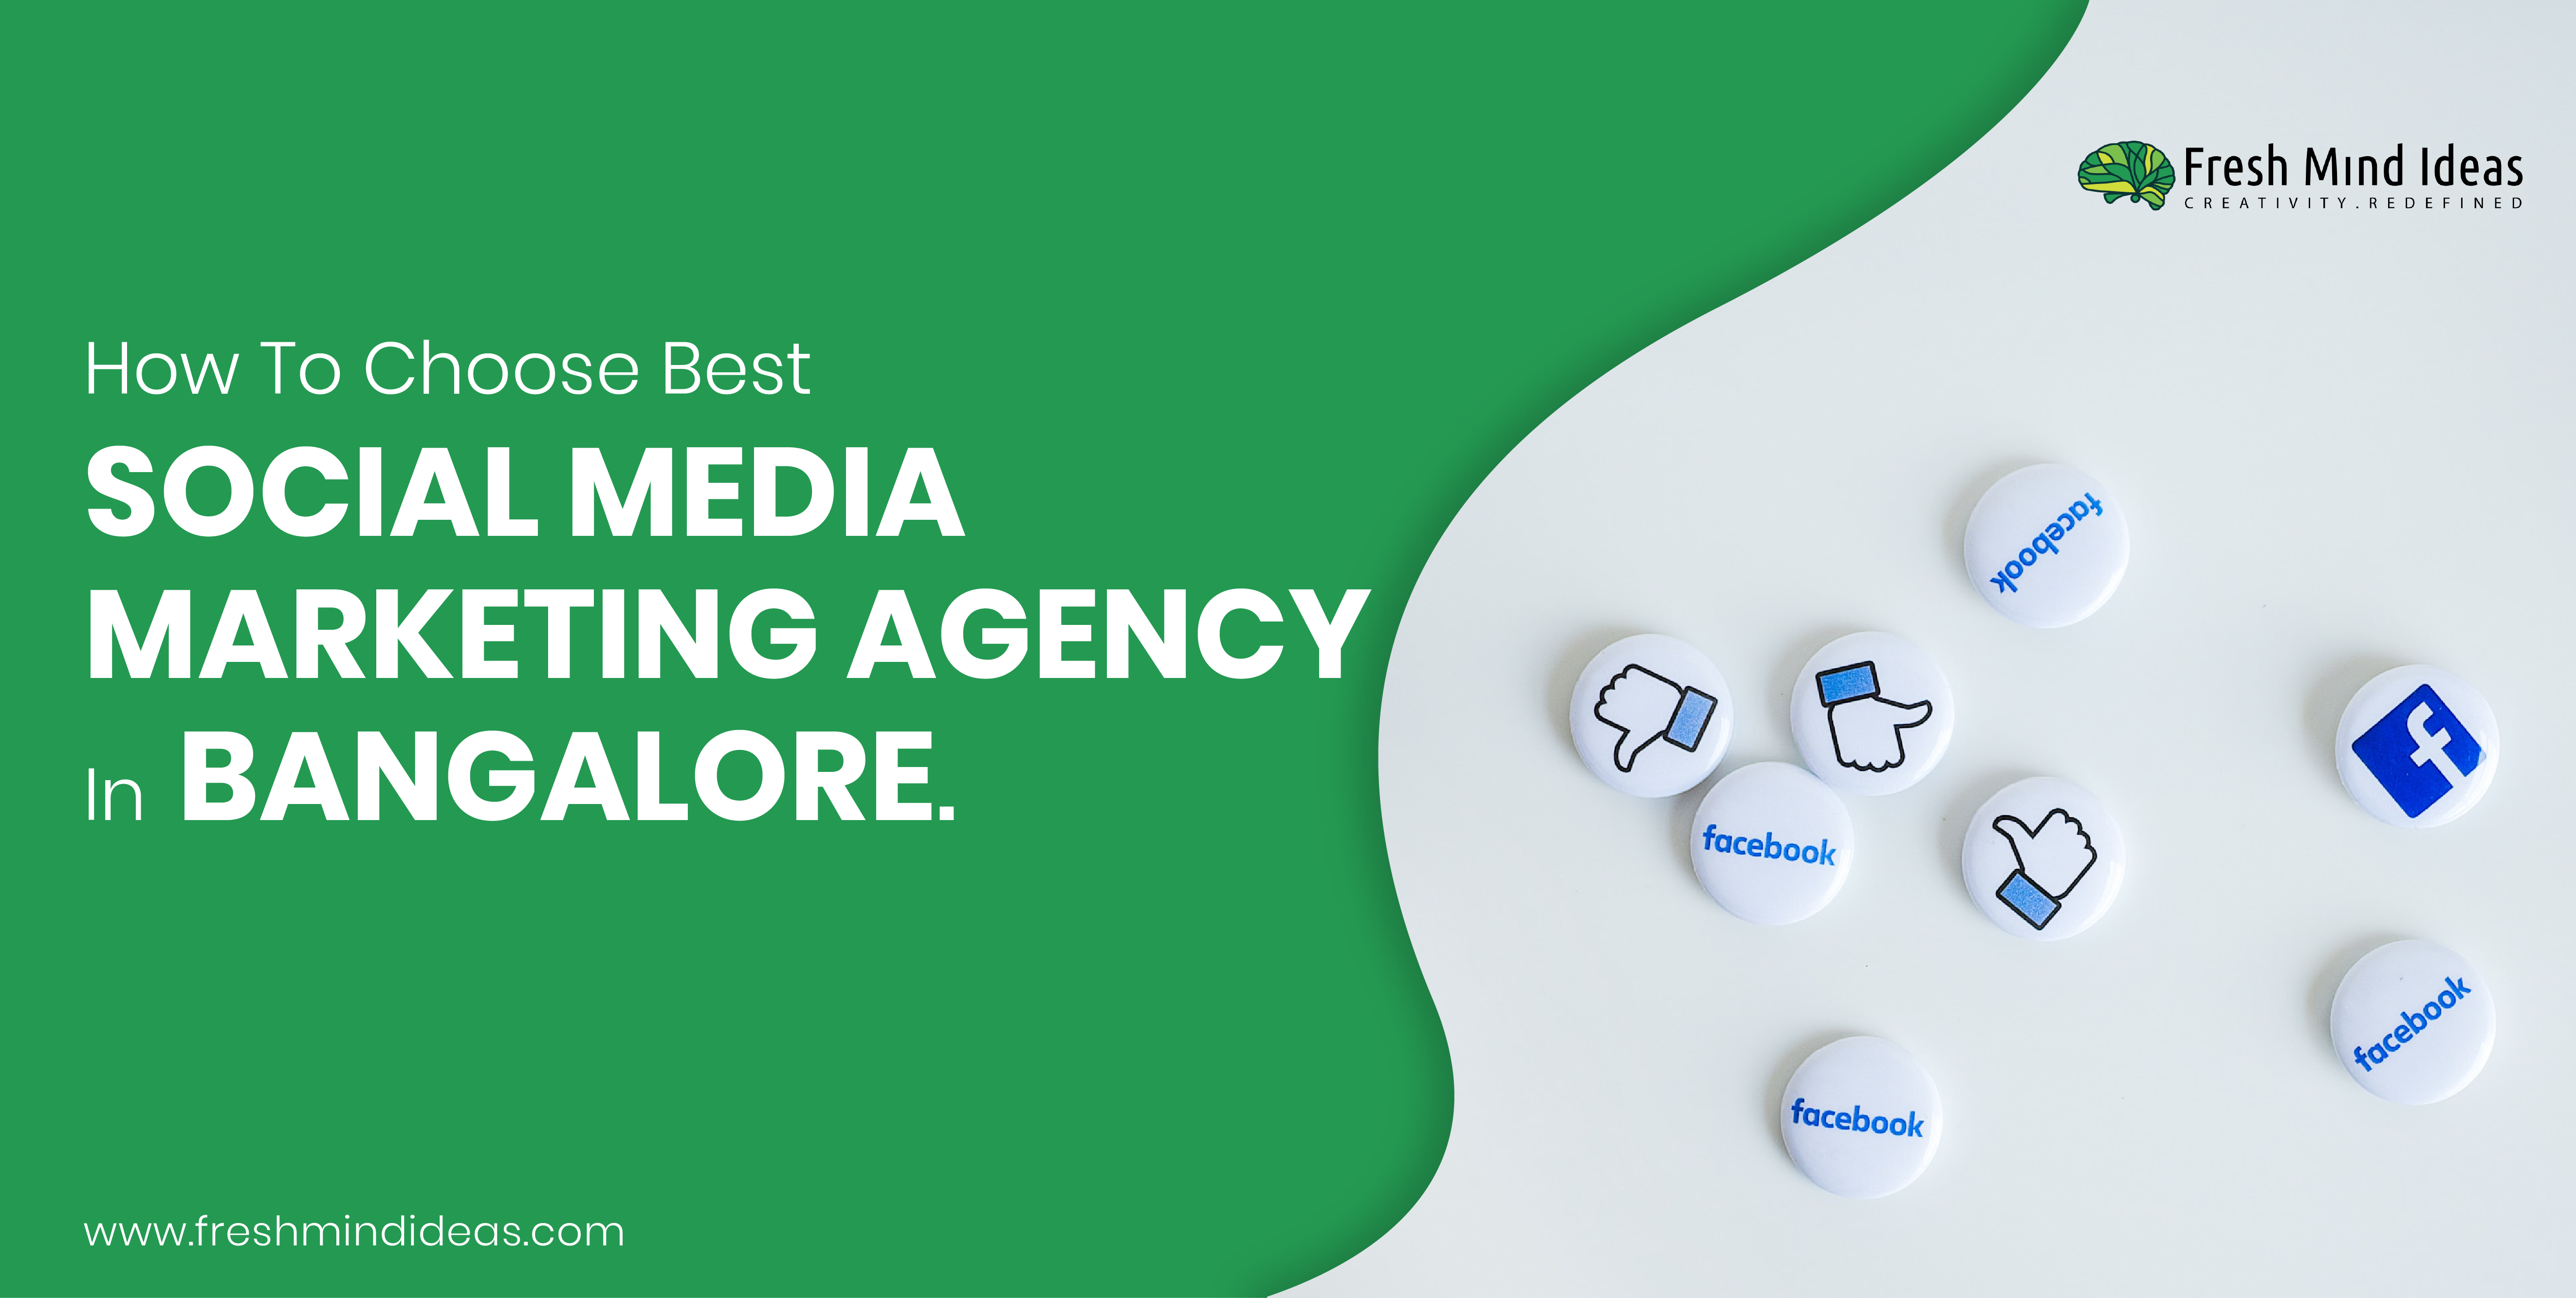 How To Choose Best Social Media Marketing Agency In Bangalore